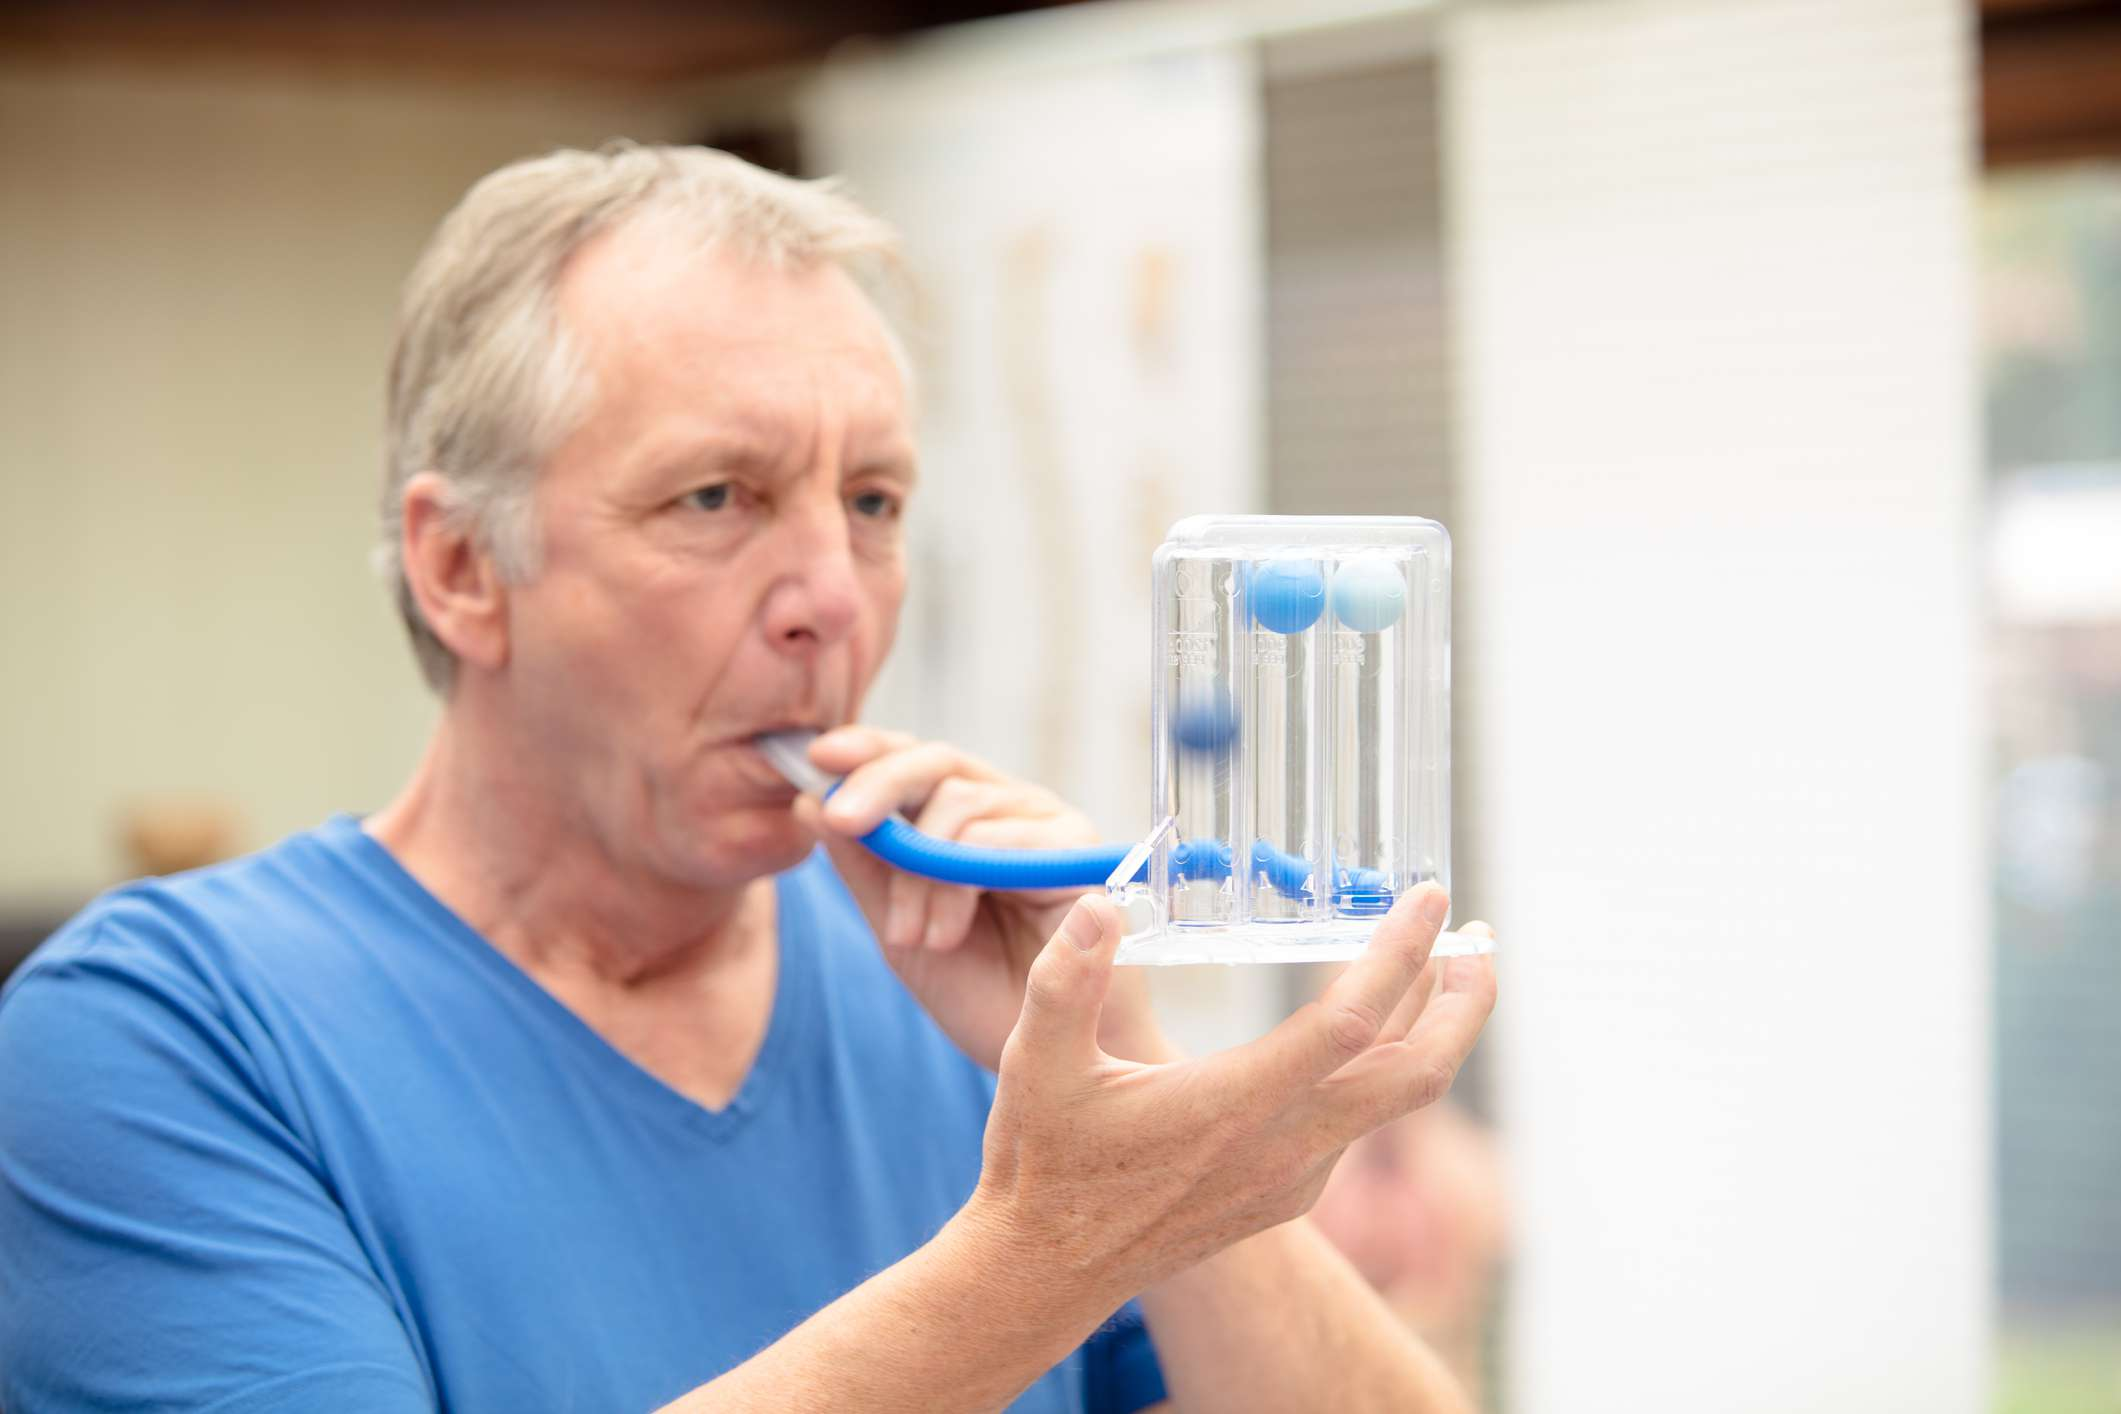 Man performing lung function test